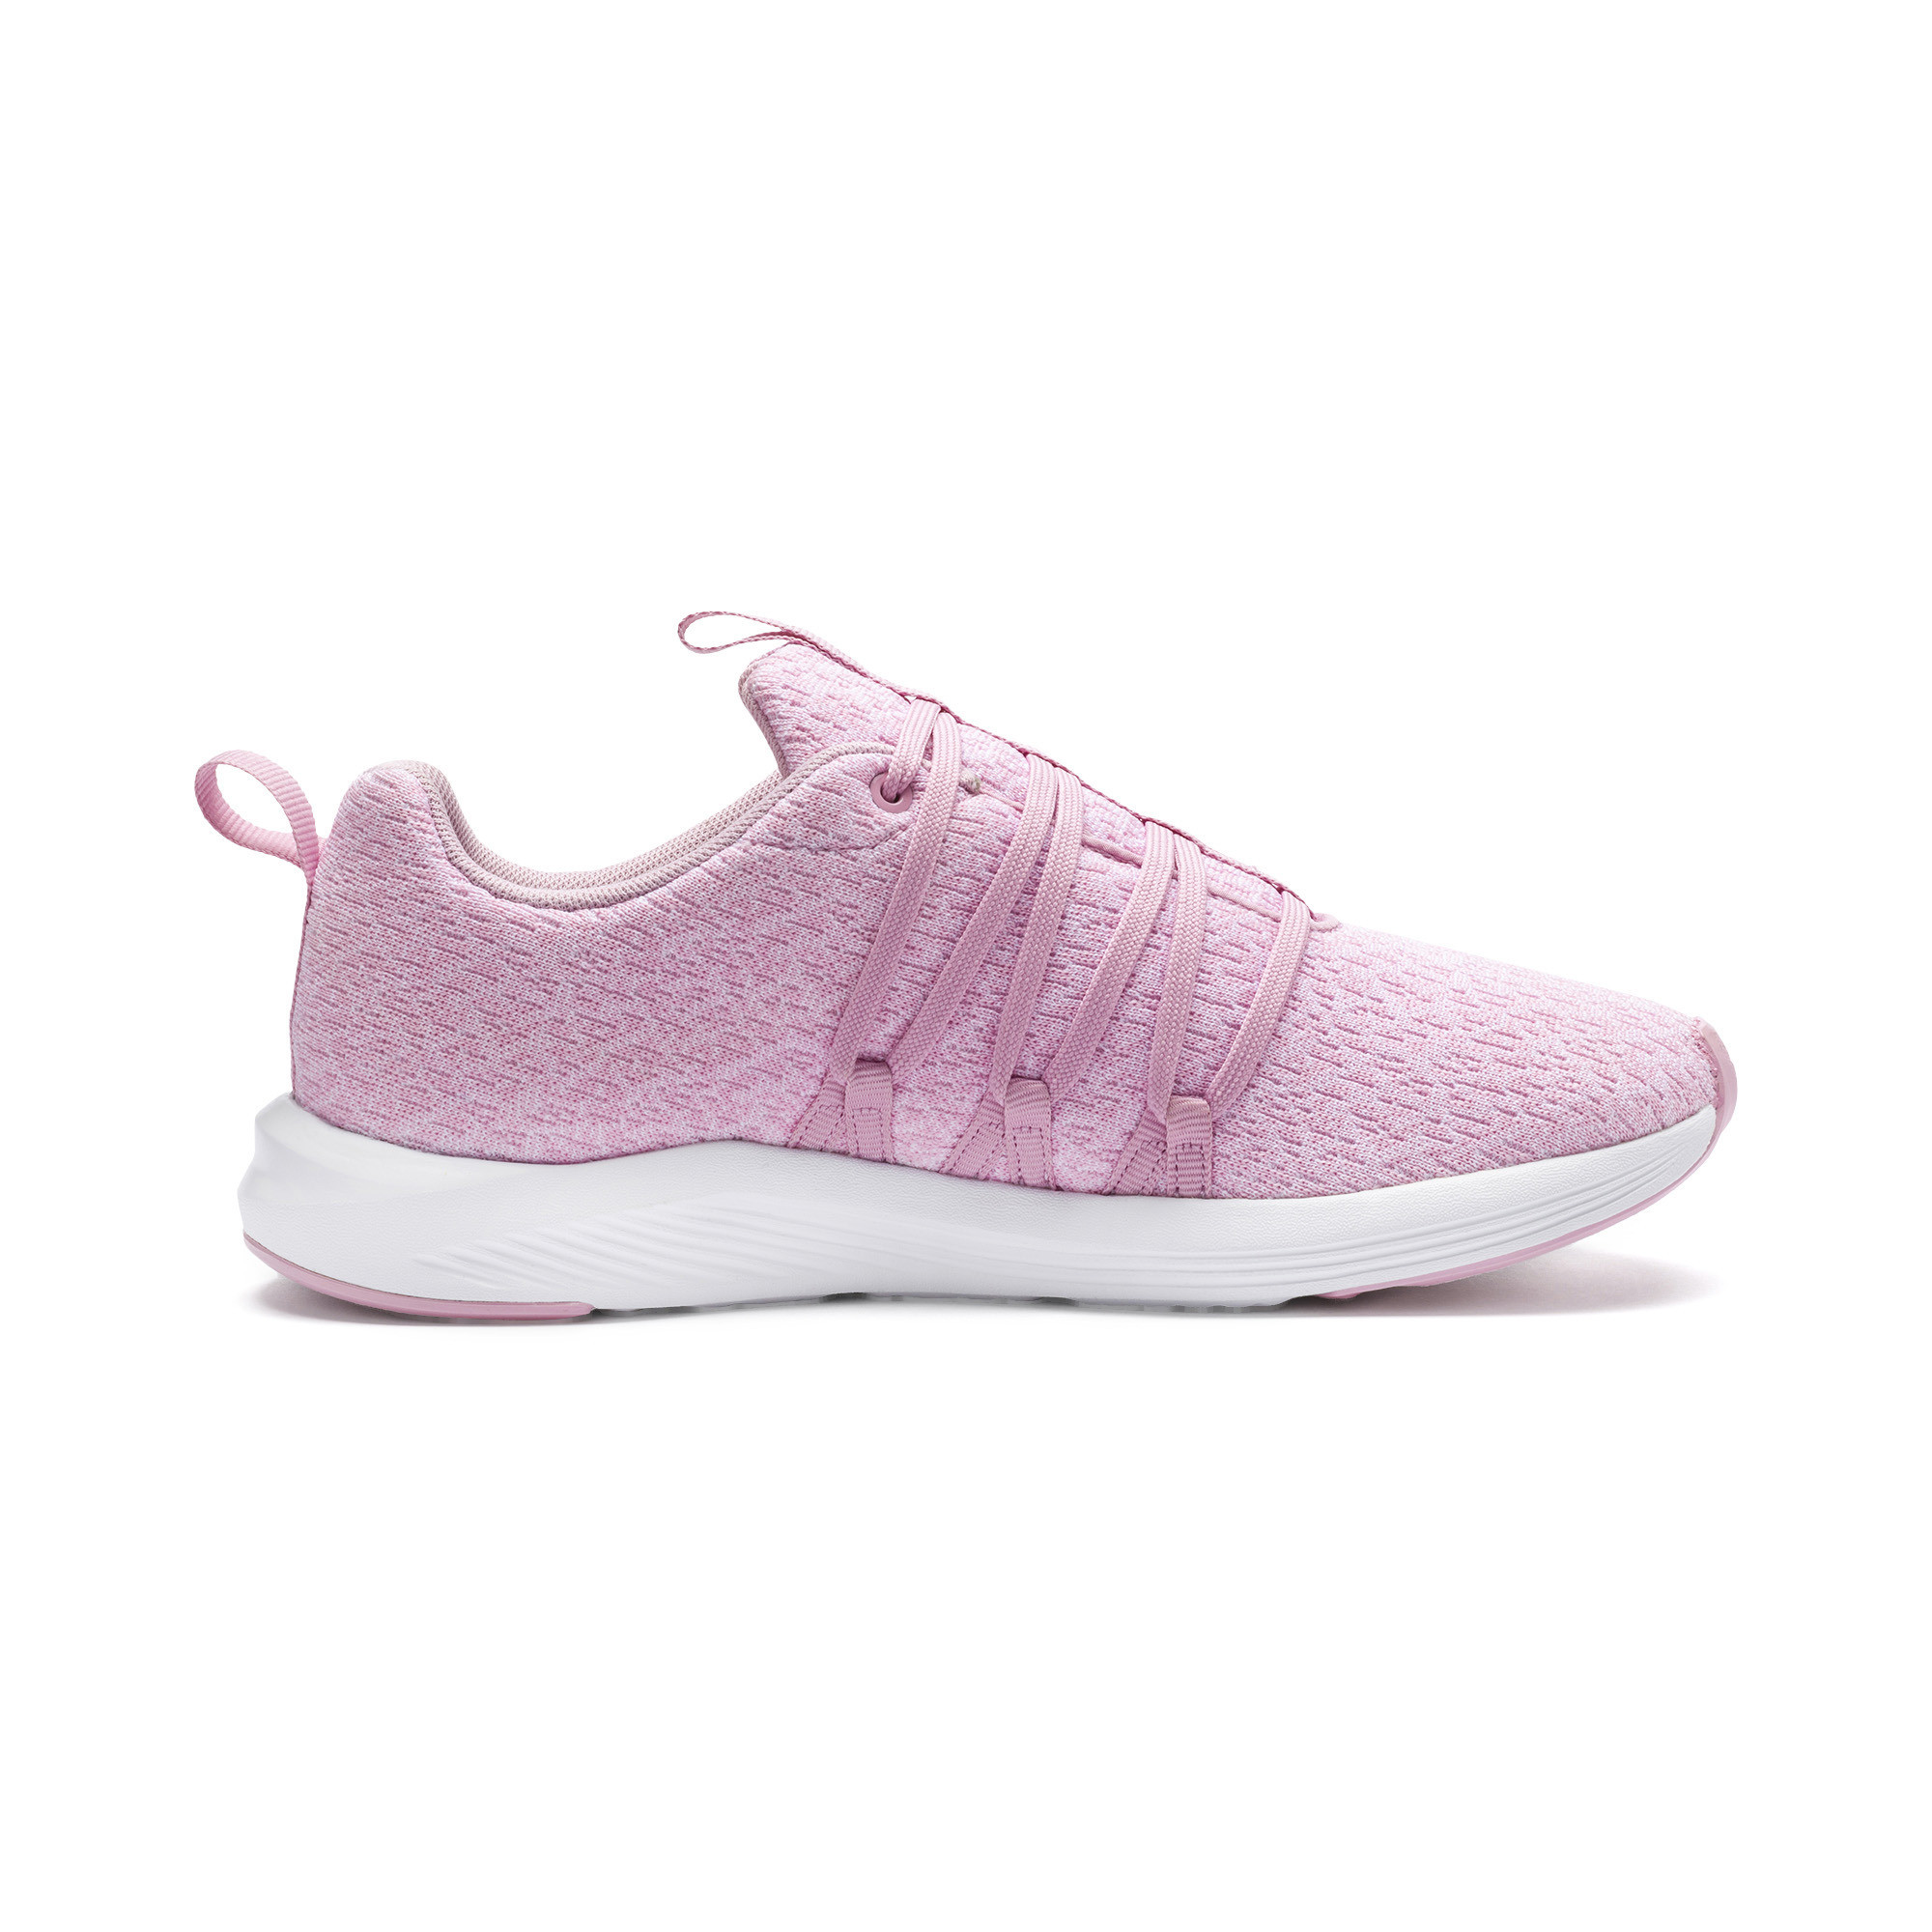 PUMA-Prowl-Alt-Knit-Women-039-s-Training-Shoes-Women-Shoe-Training thumbnail 6